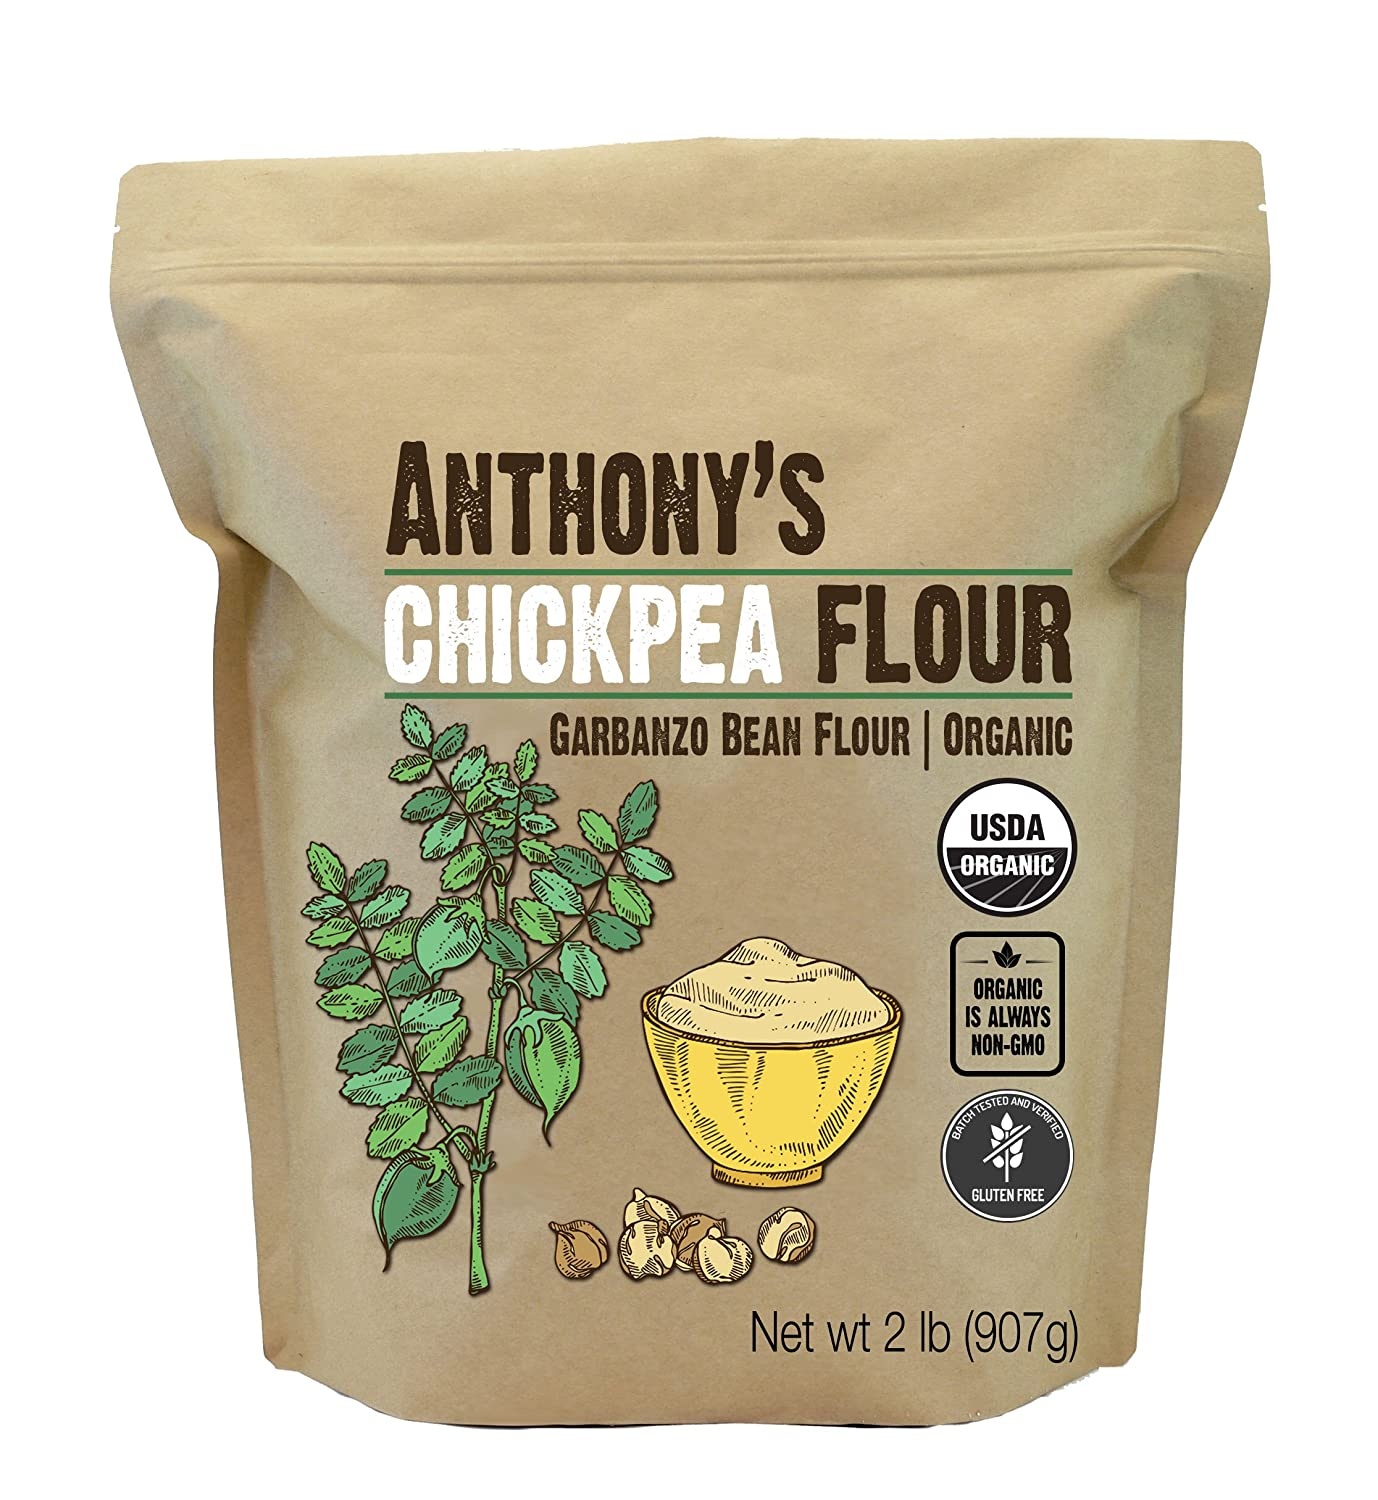 Anthony's Organic Chickpea Flour/Garbanzo Bean Flour